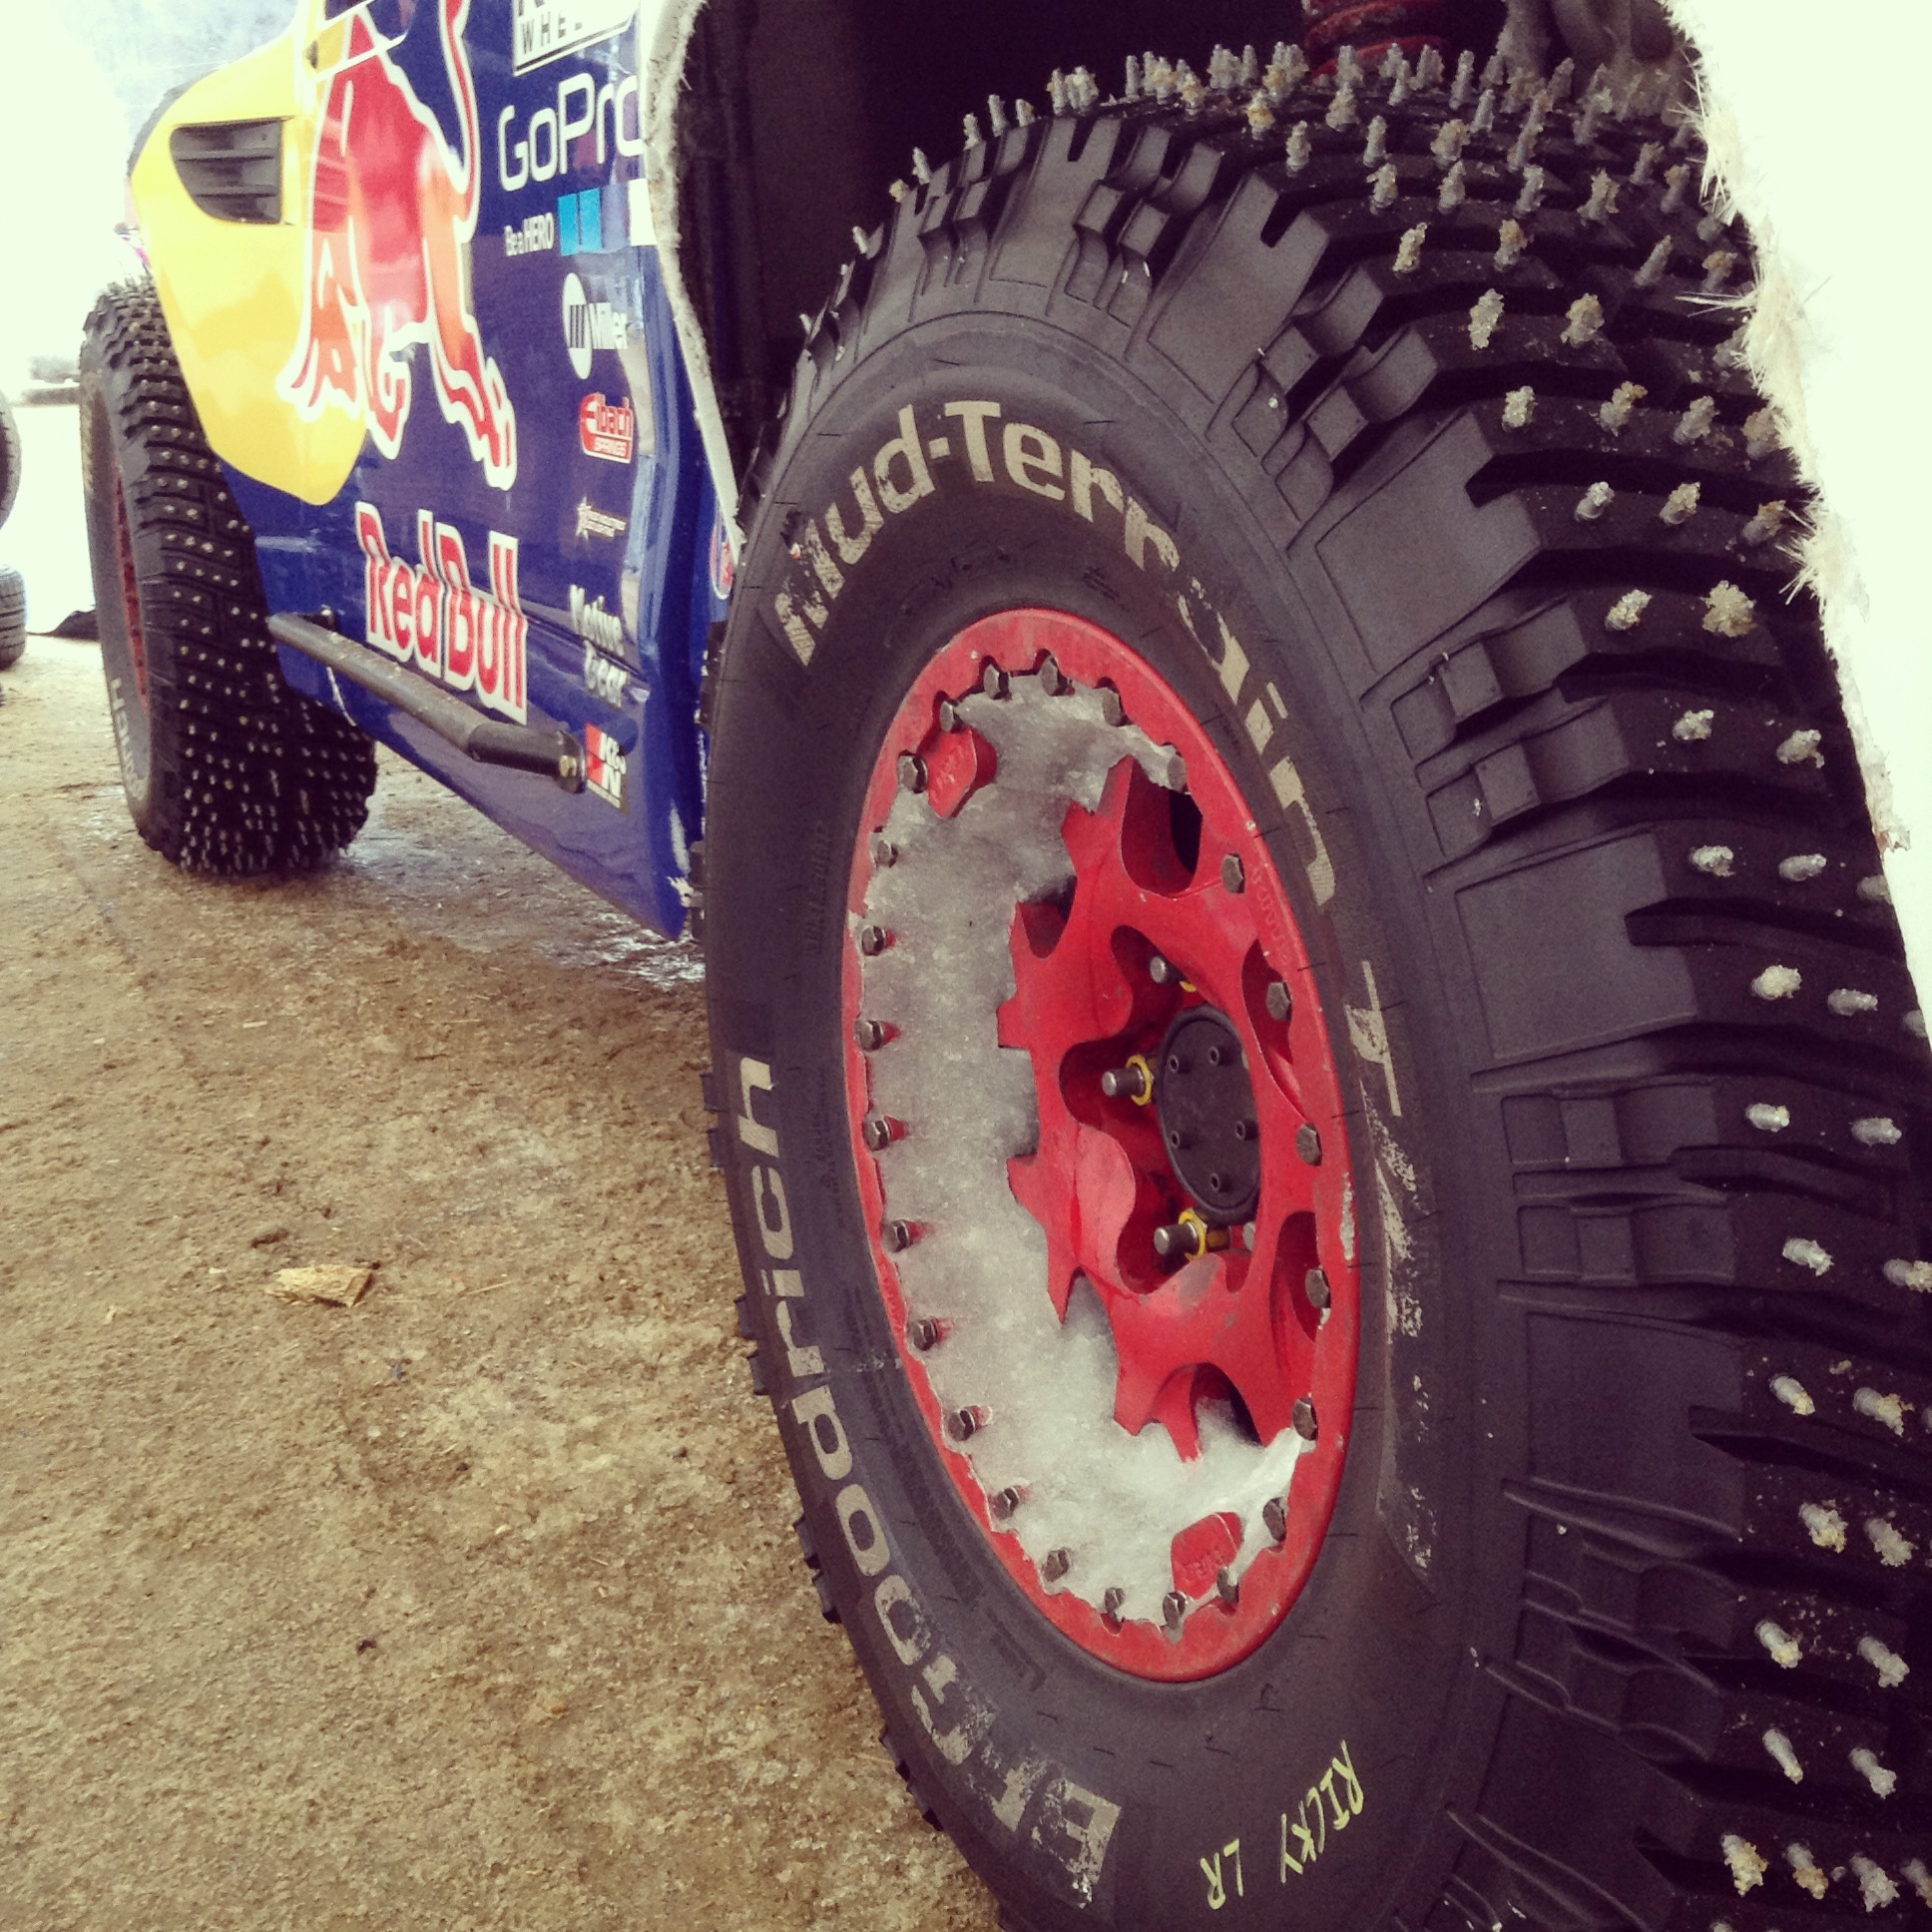 bfgoodrich tires prepared to conquer snow at red bull frozen rush bfgoodrich racing. Black Bedroom Furniture Sets. Home Design Ideas